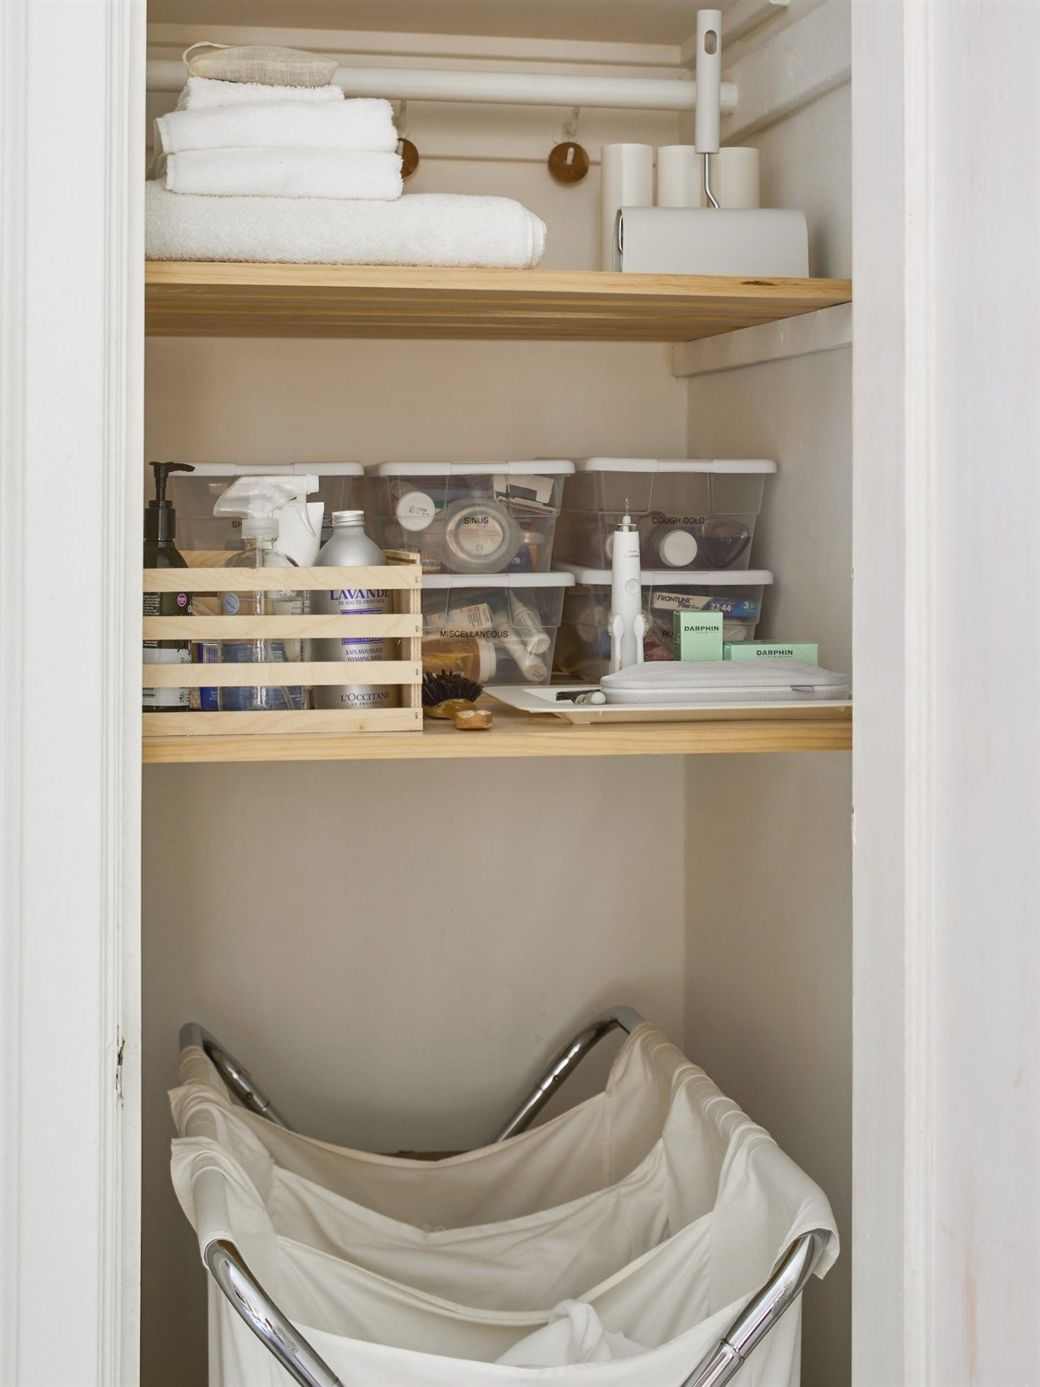 Slatted Shelves In Linen Closets Allow Linens To Breathe